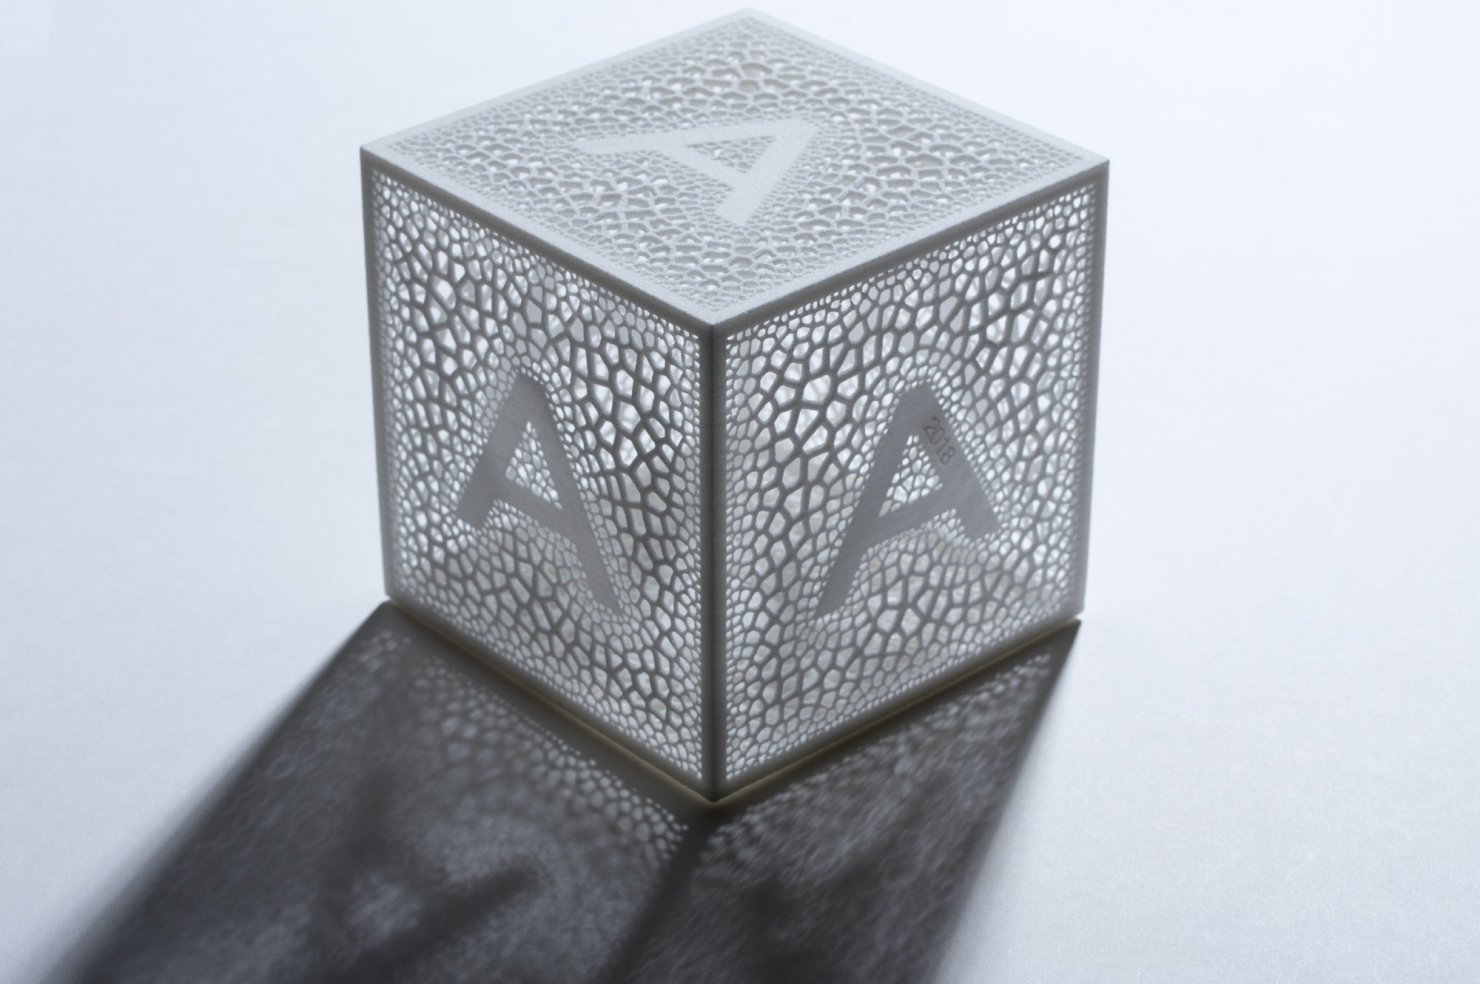 A beautiful translucent cube with rich organic texture